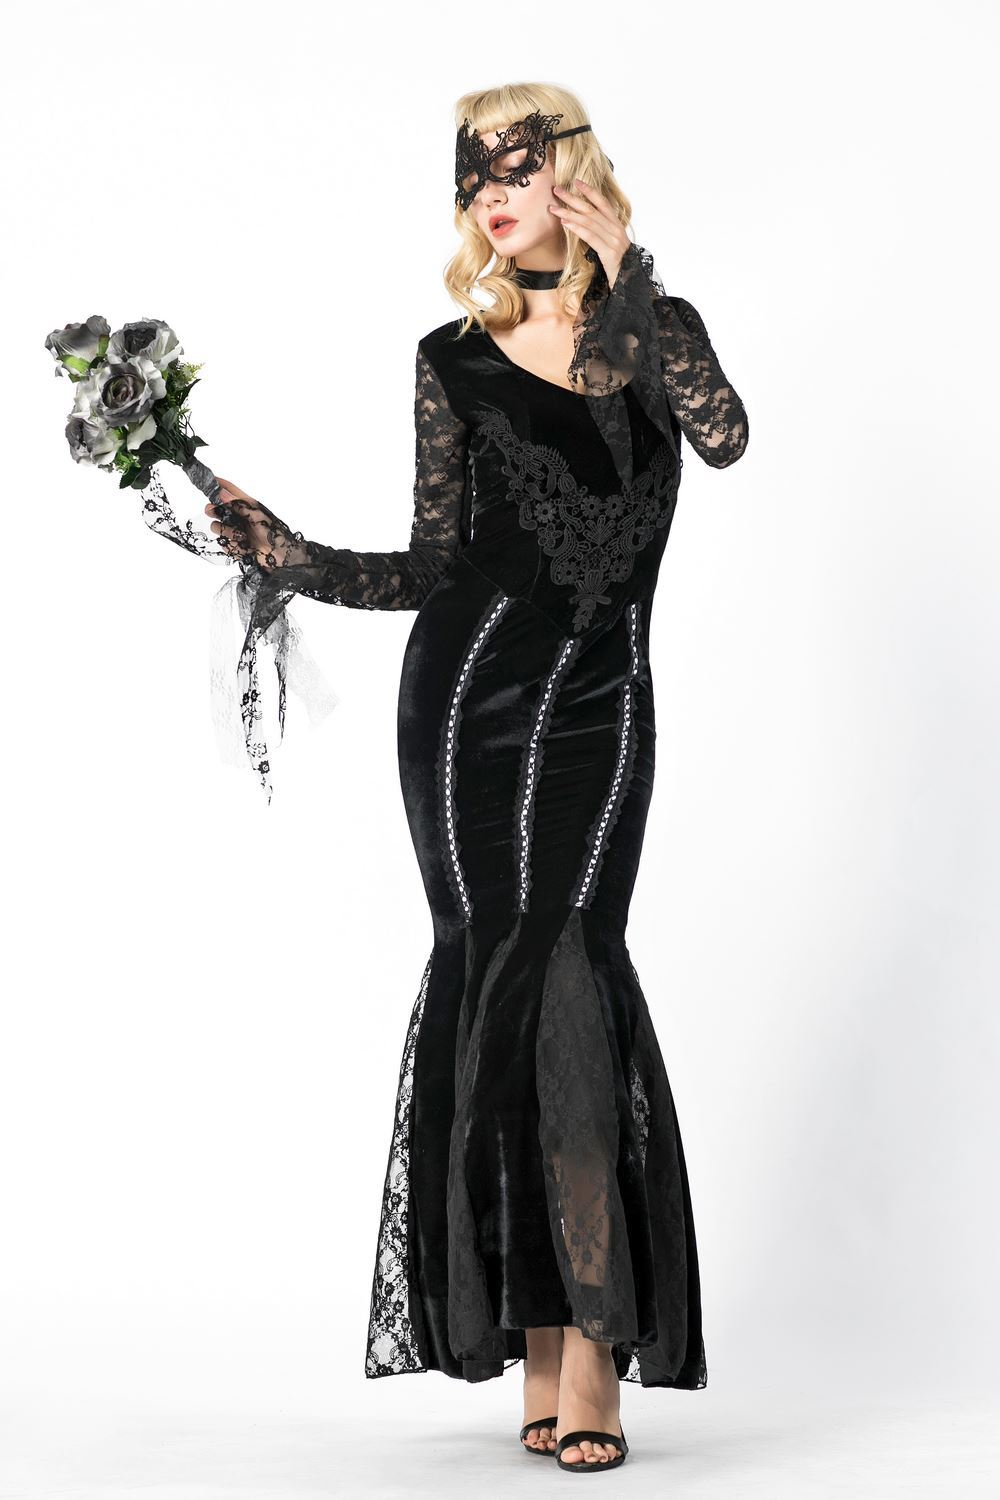 The vampire earl vampire role play dress with black lace for Halloween